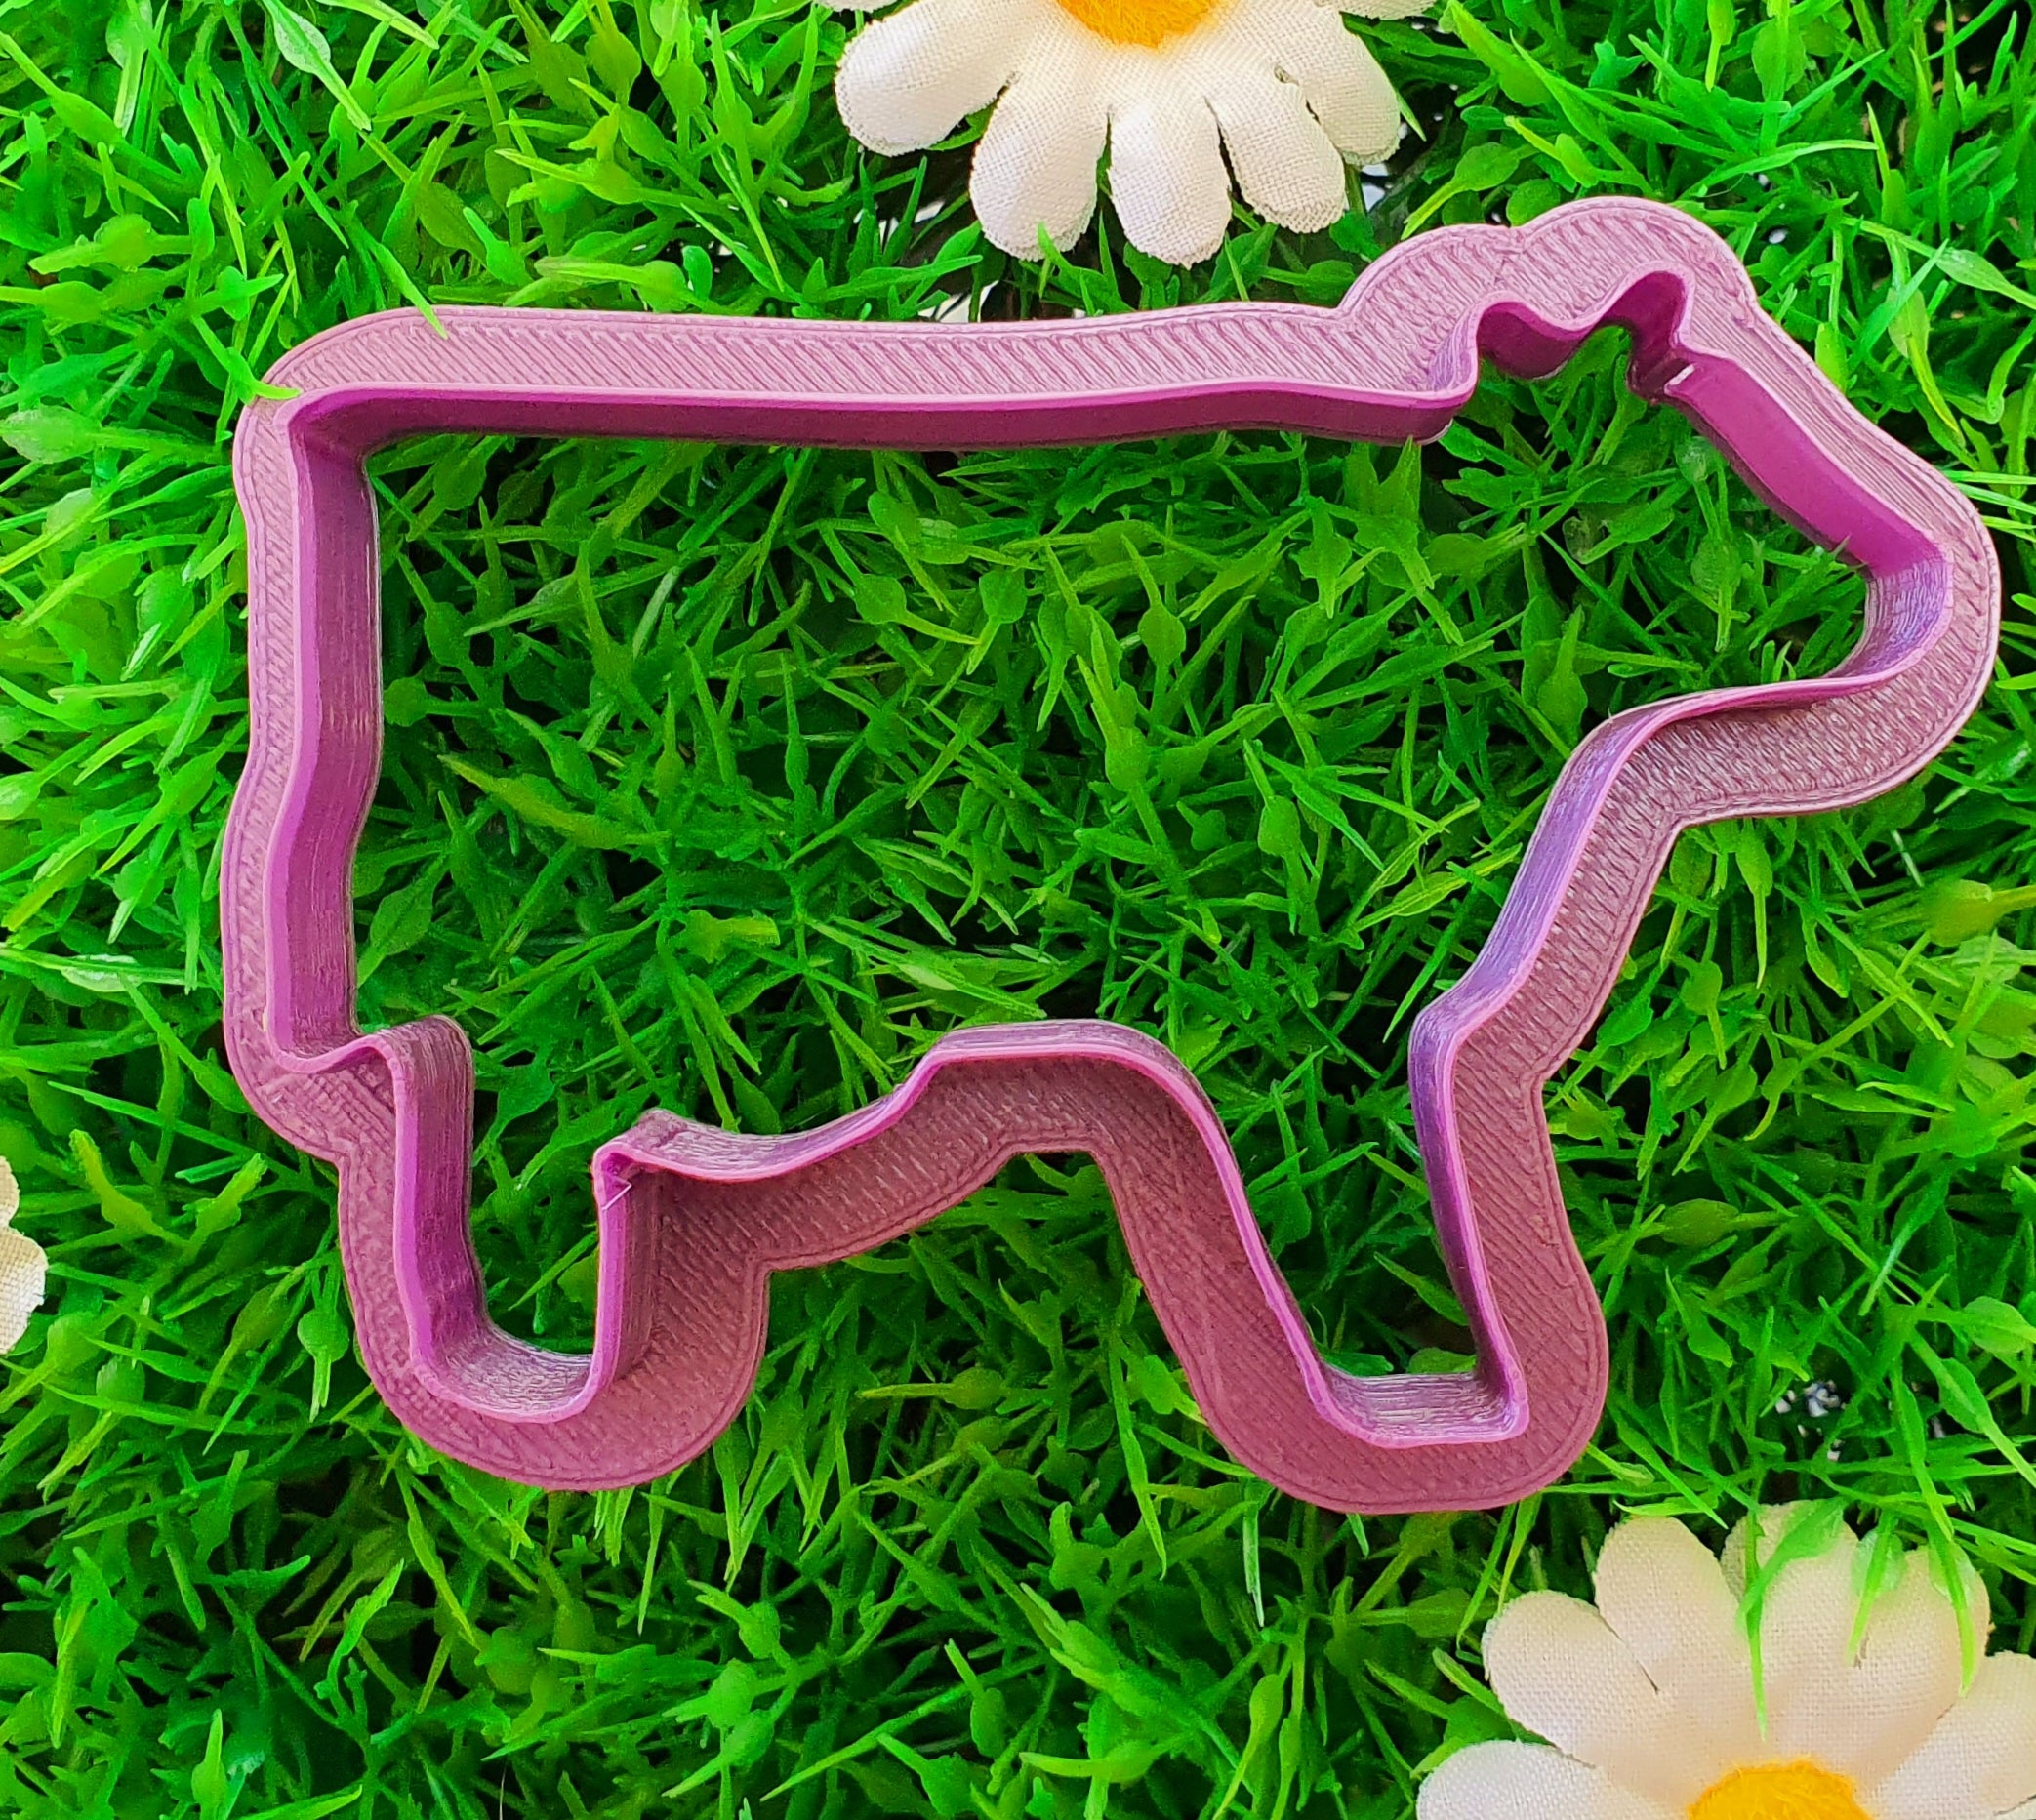 Cow Cookie Cutter 8cm